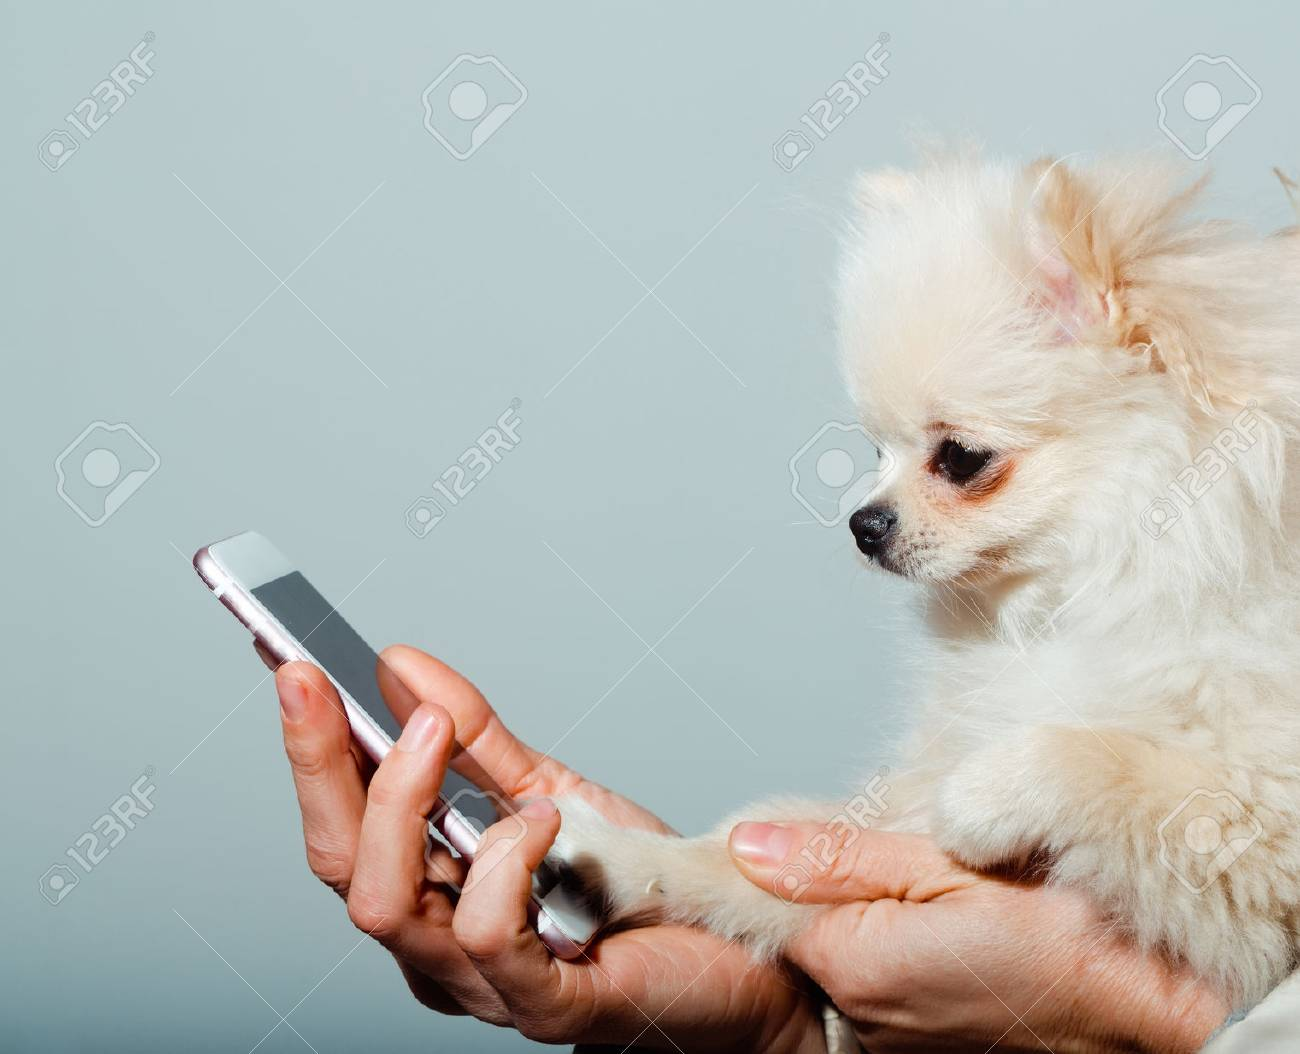 Cute pomeranian dog or puppy pet, with fawn coat using smartphone,